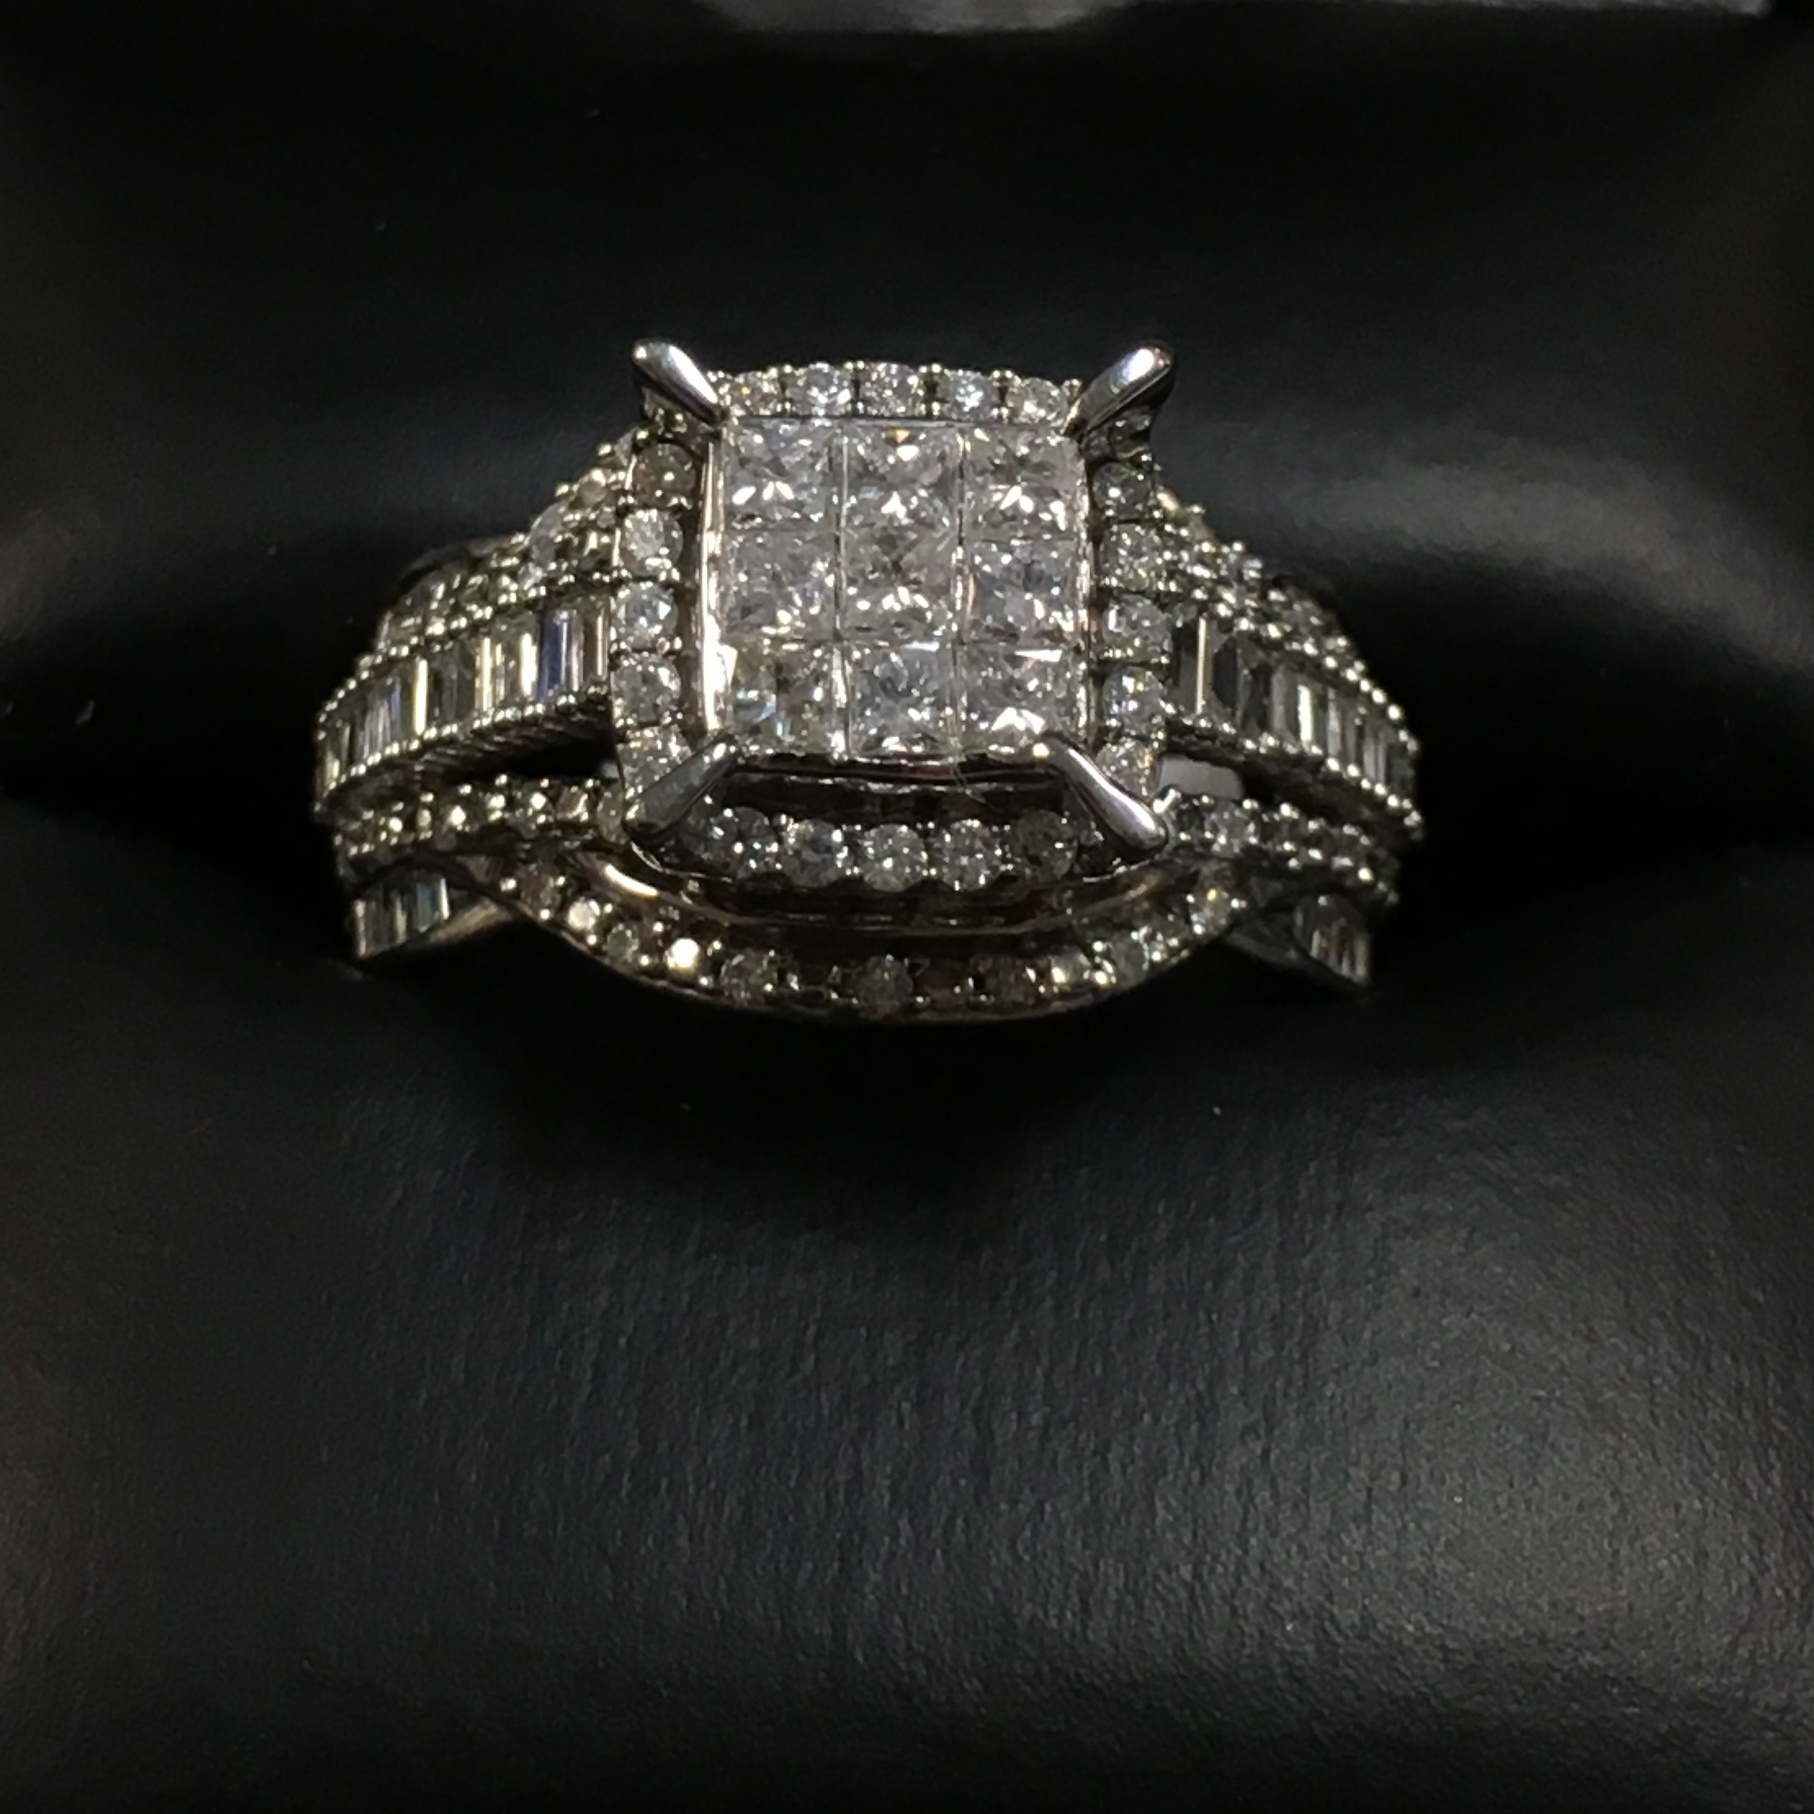 10KT WHITE GOLD BEAUTIFUL ENGAGEMENT RING WITH DIAMONDS -SIZE: 7